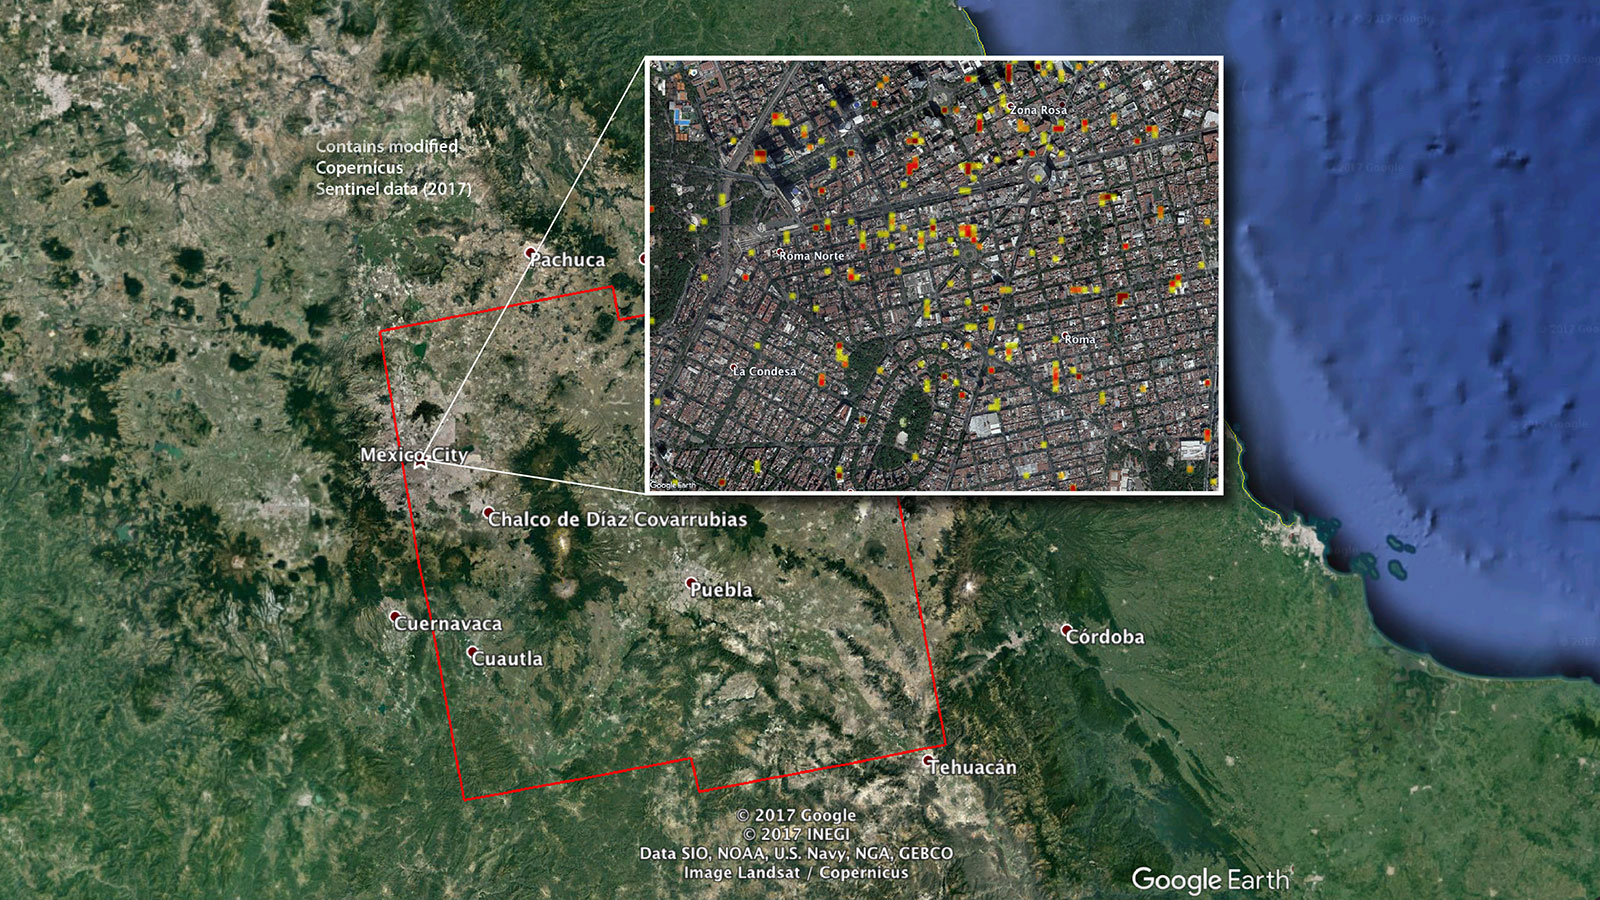 NASAProduced Damage Maps May Aid Mexico Quake Response NASA - Map of us land originally held by mexico